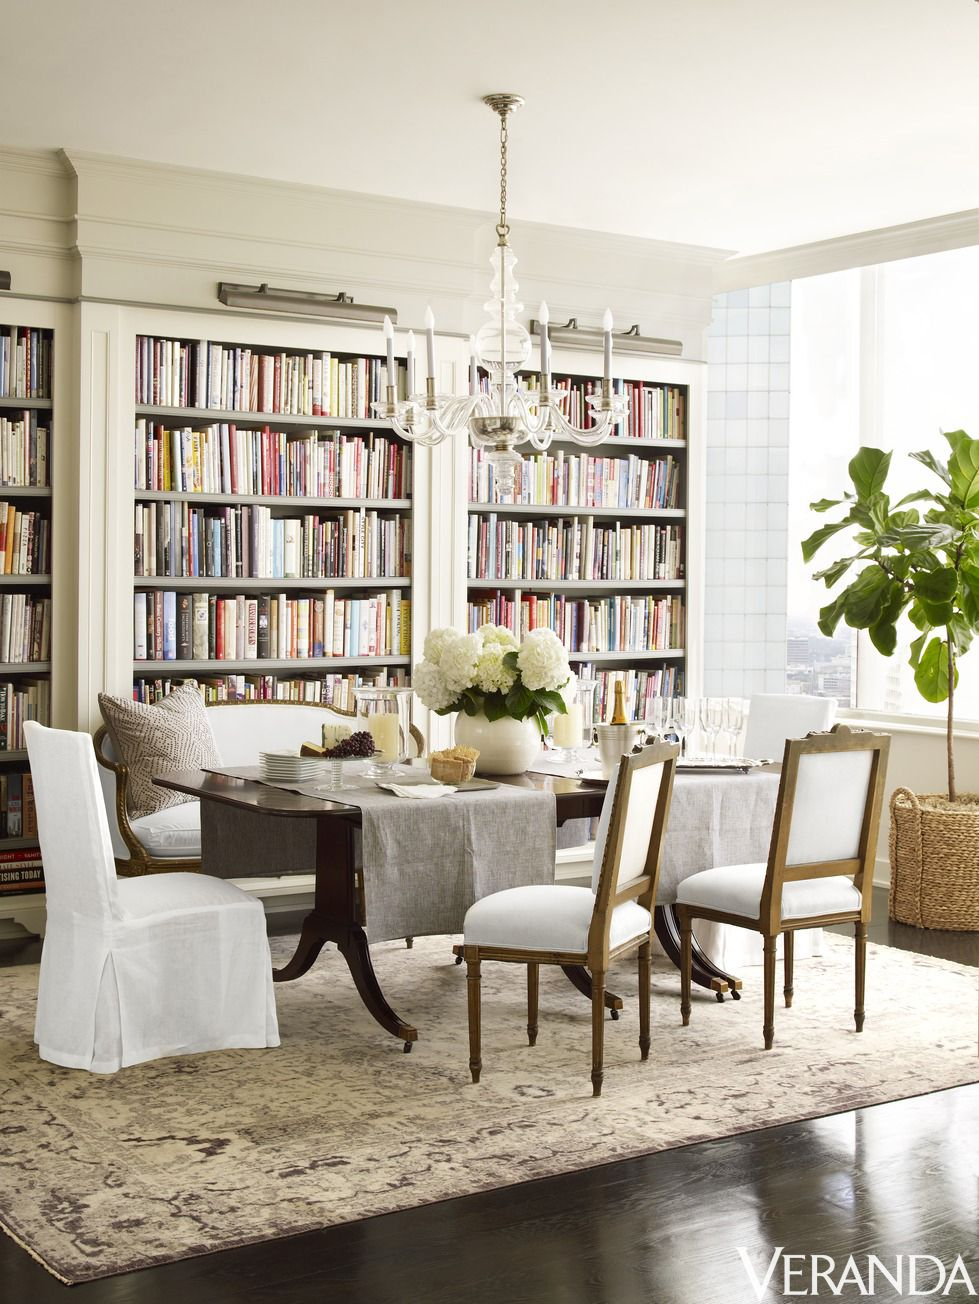 15 of the years best rooms - Veranda Dining Rooms